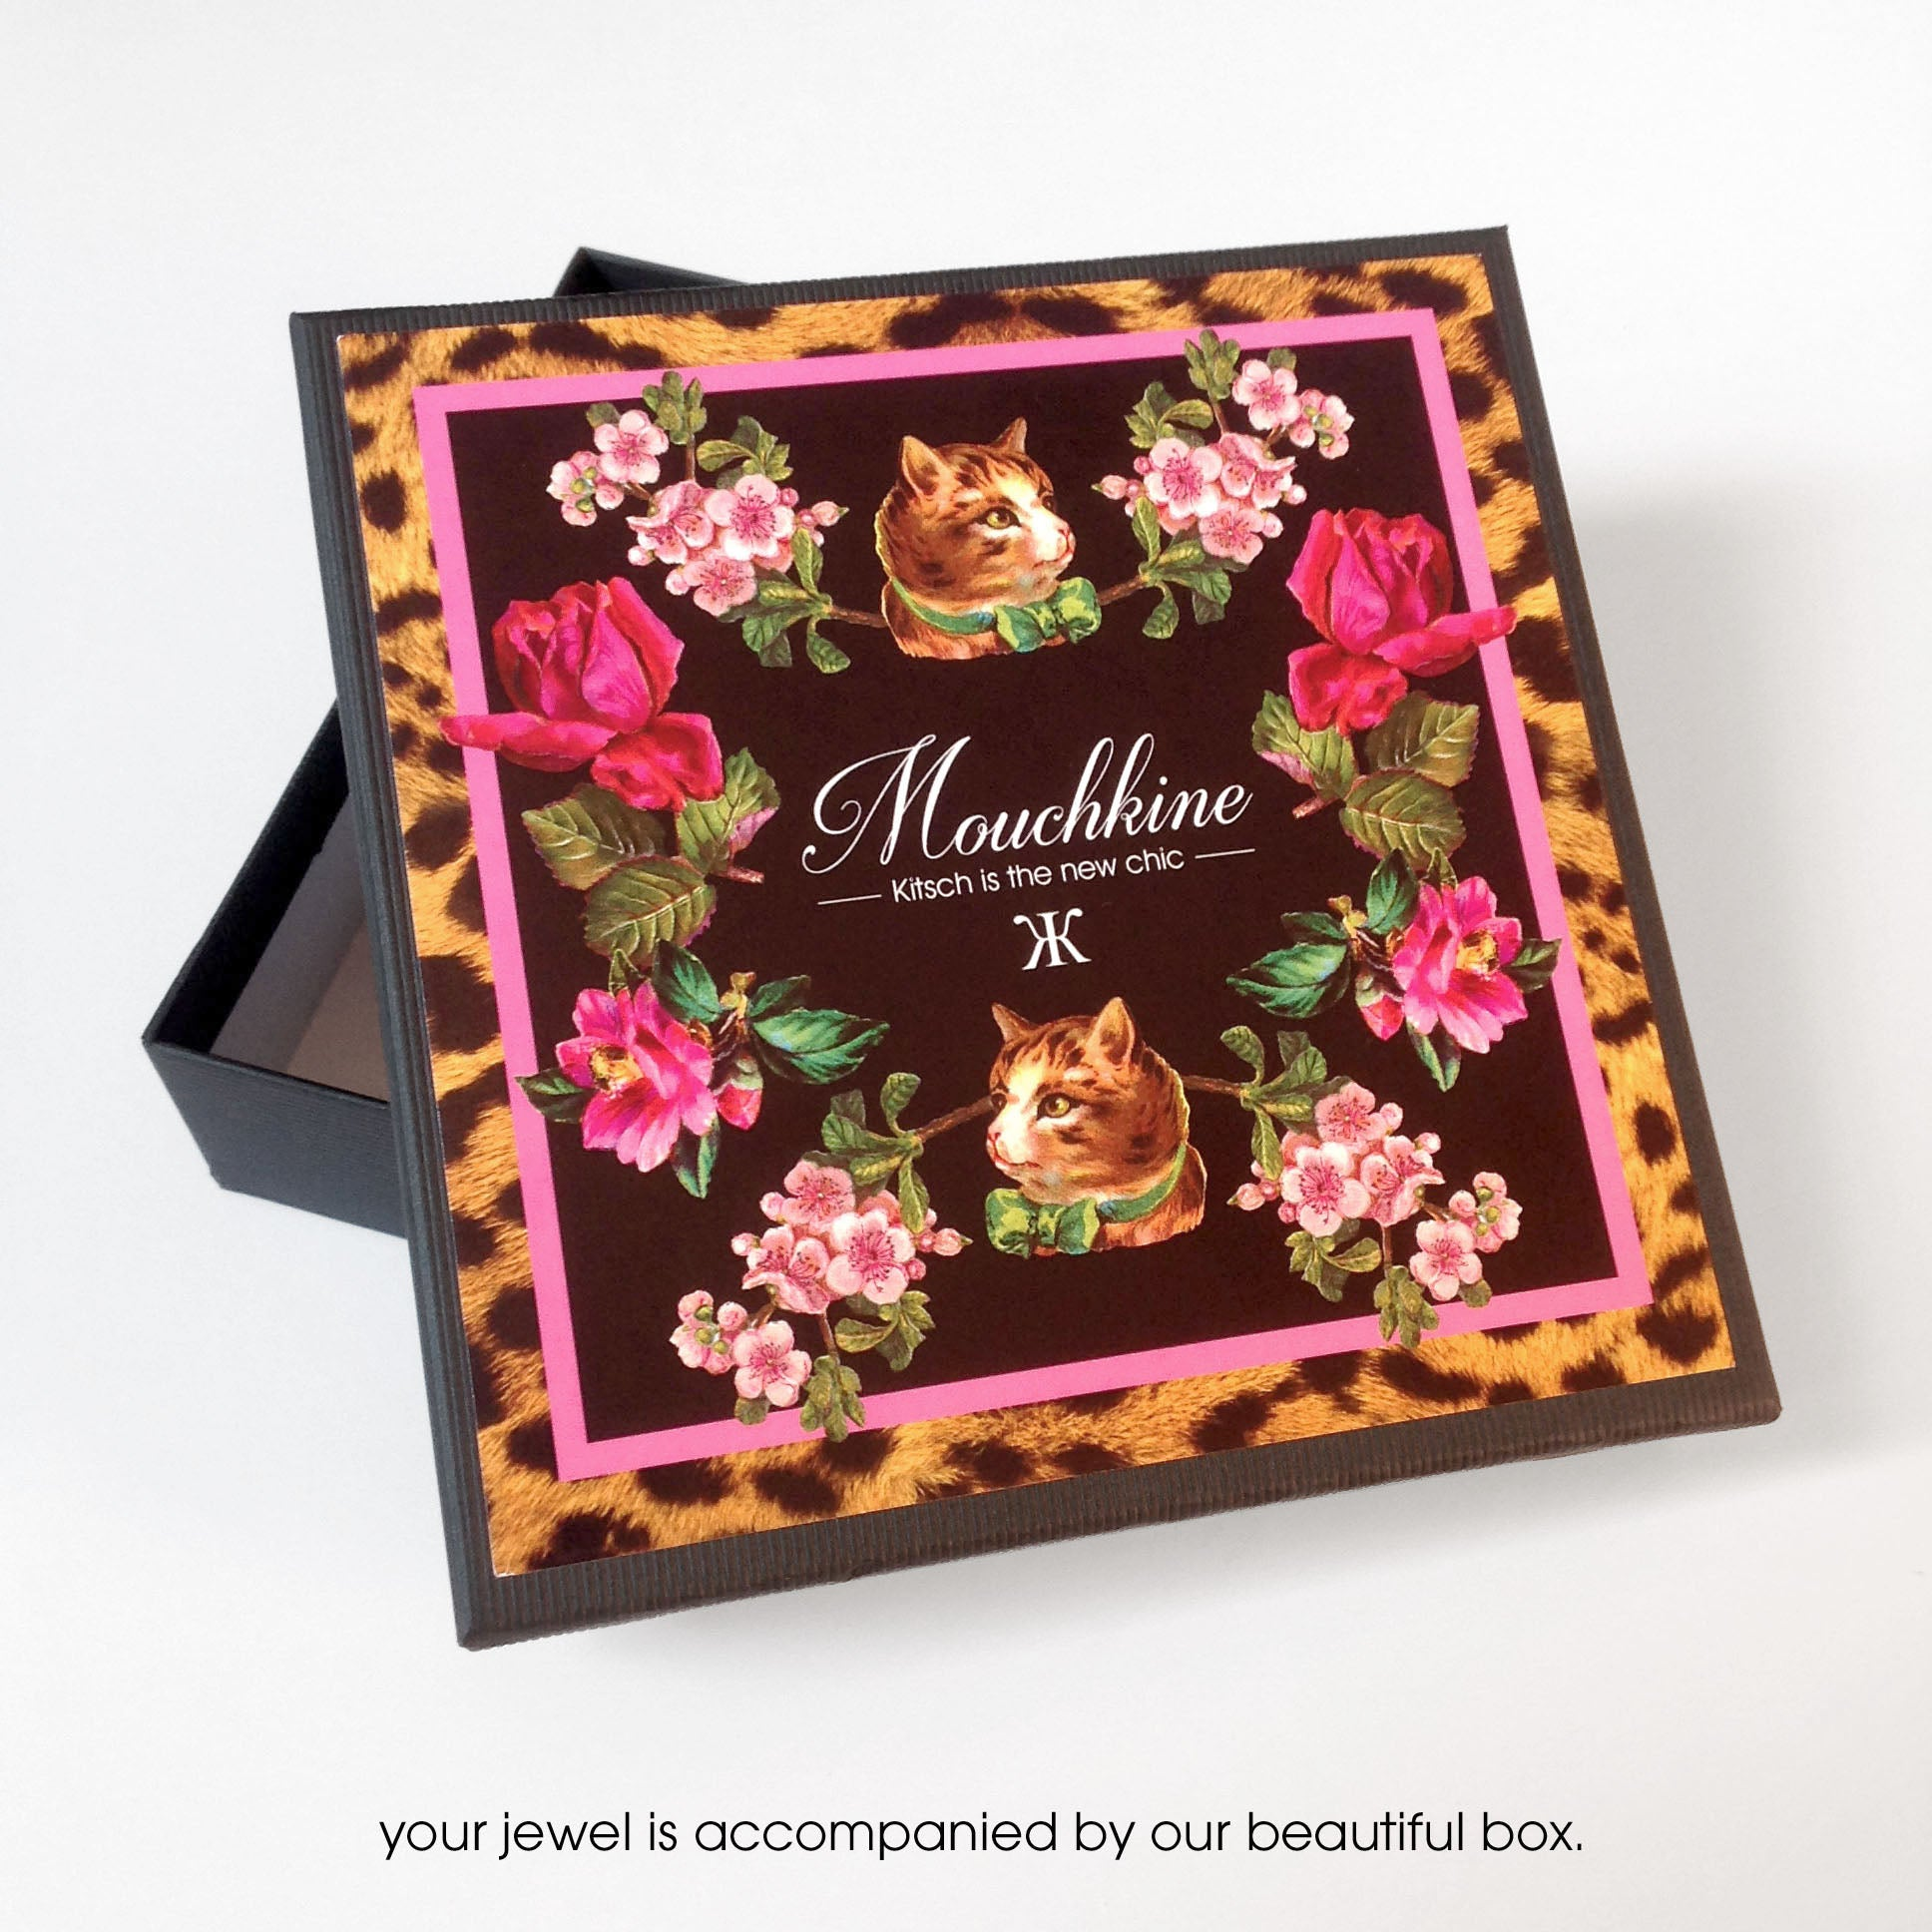 Mouchkine jewelry chic and beautiful packaging made in france